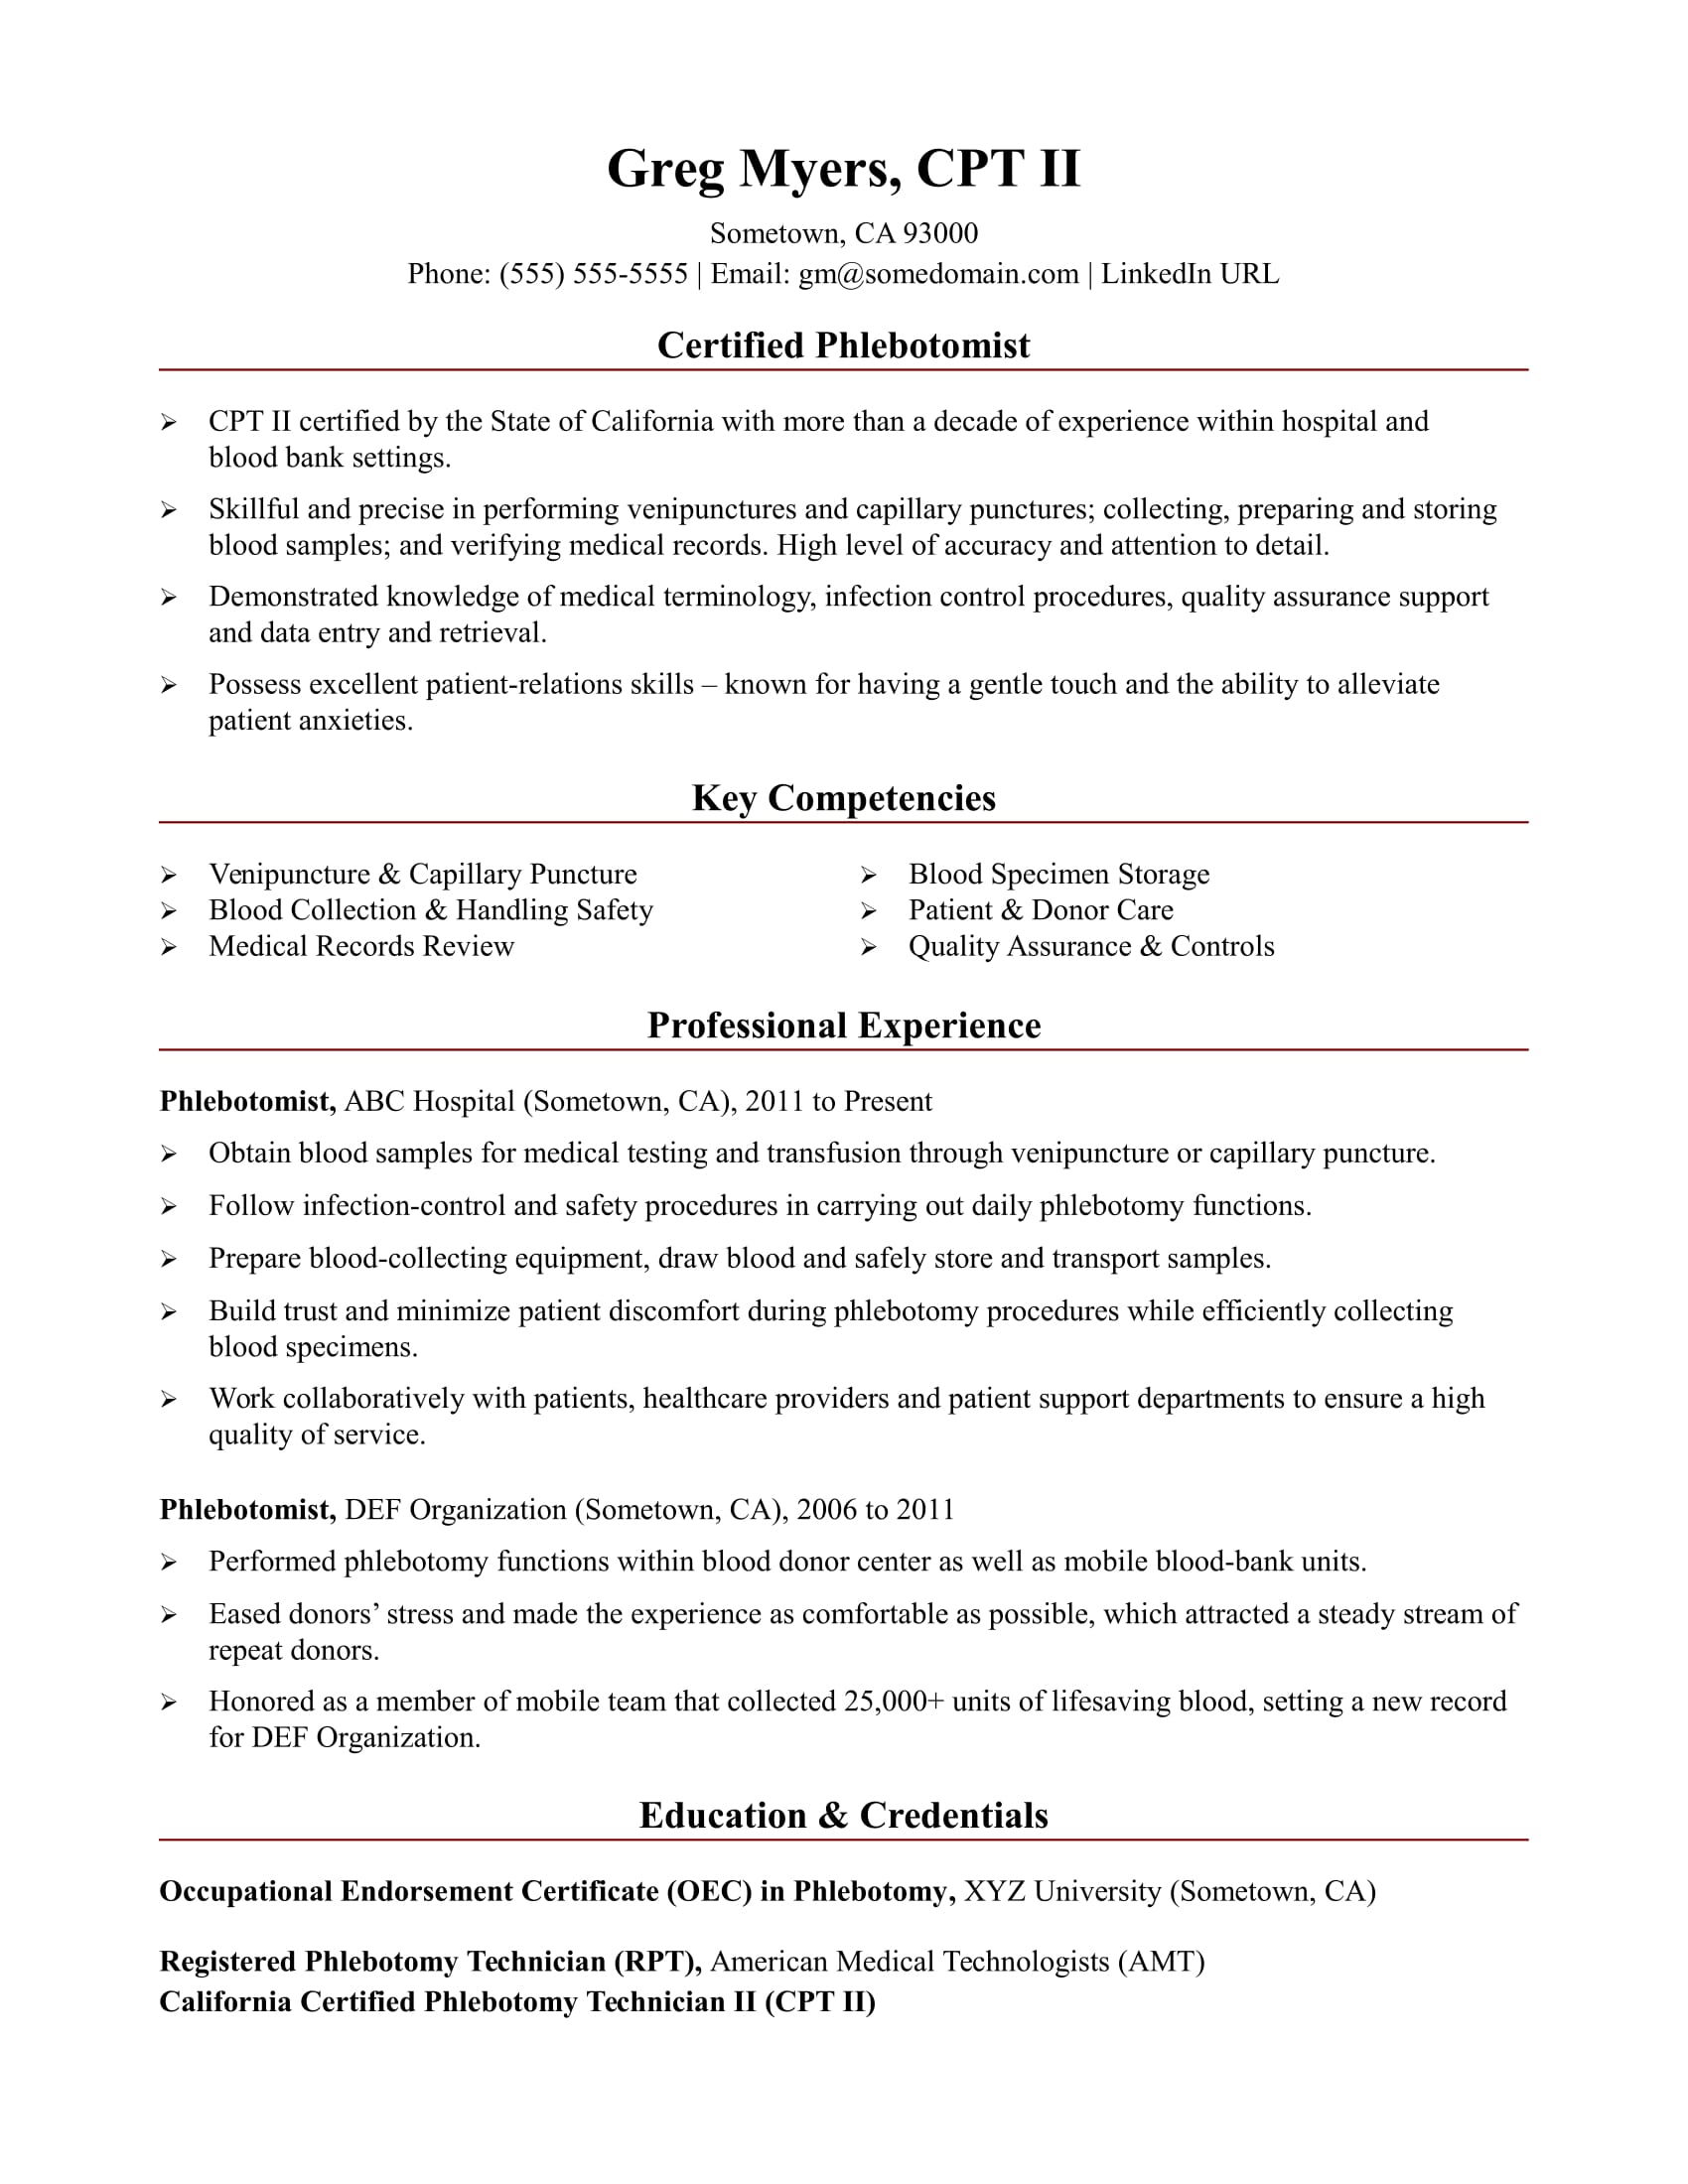 Phlebotomist resume sample monster sample resume for a phlebotomist yadclub Choice Image